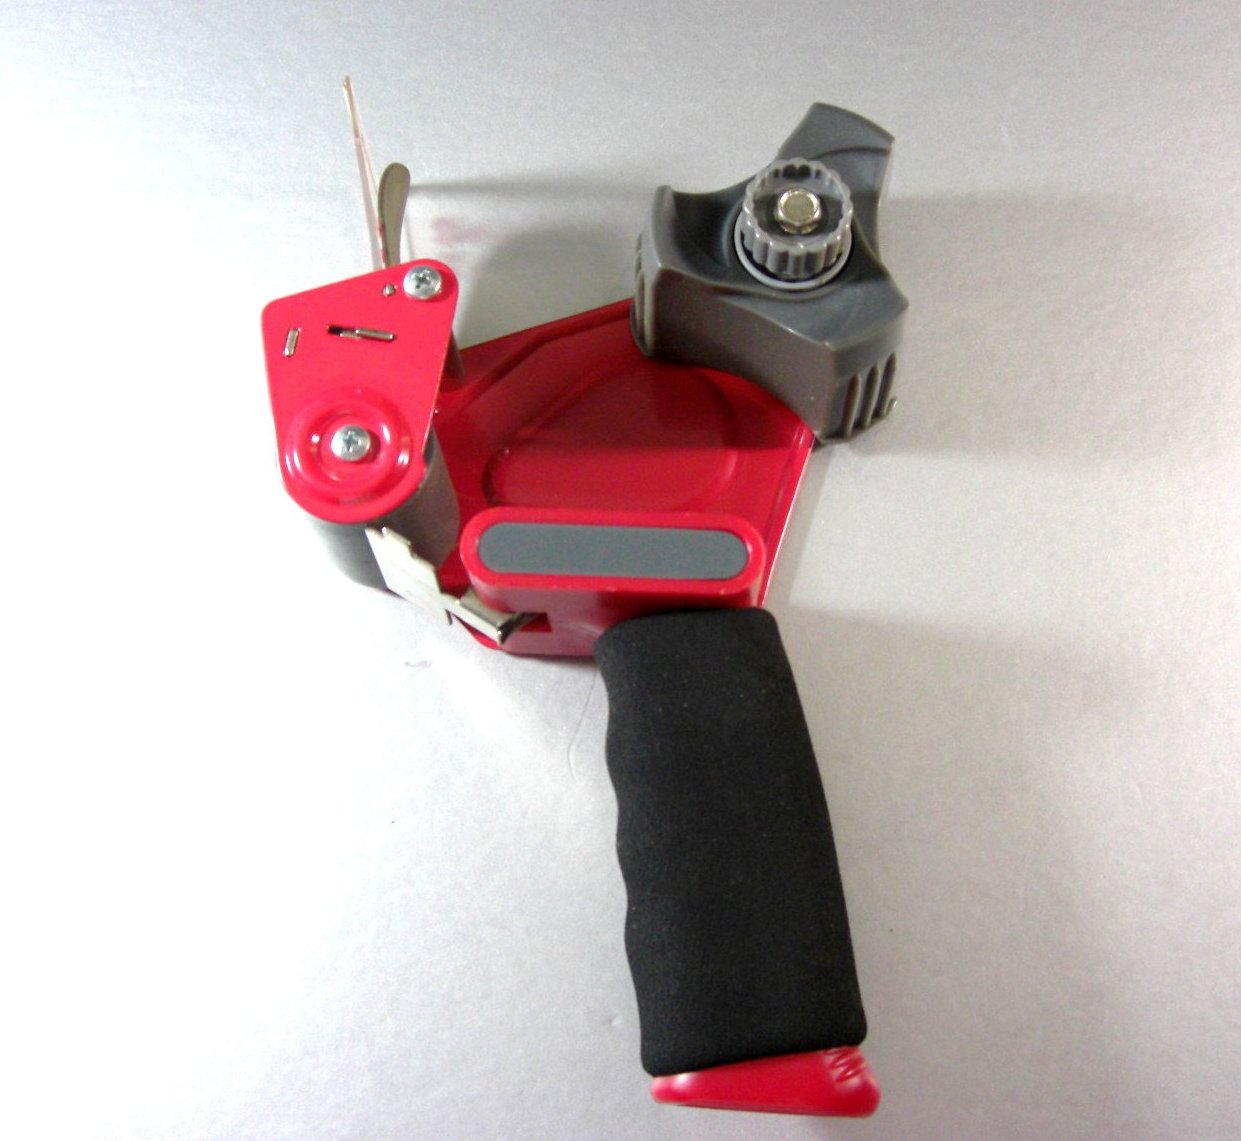 3M Scotch Hand Held Tape Dispenser Gun / Packing Shipping Sealing